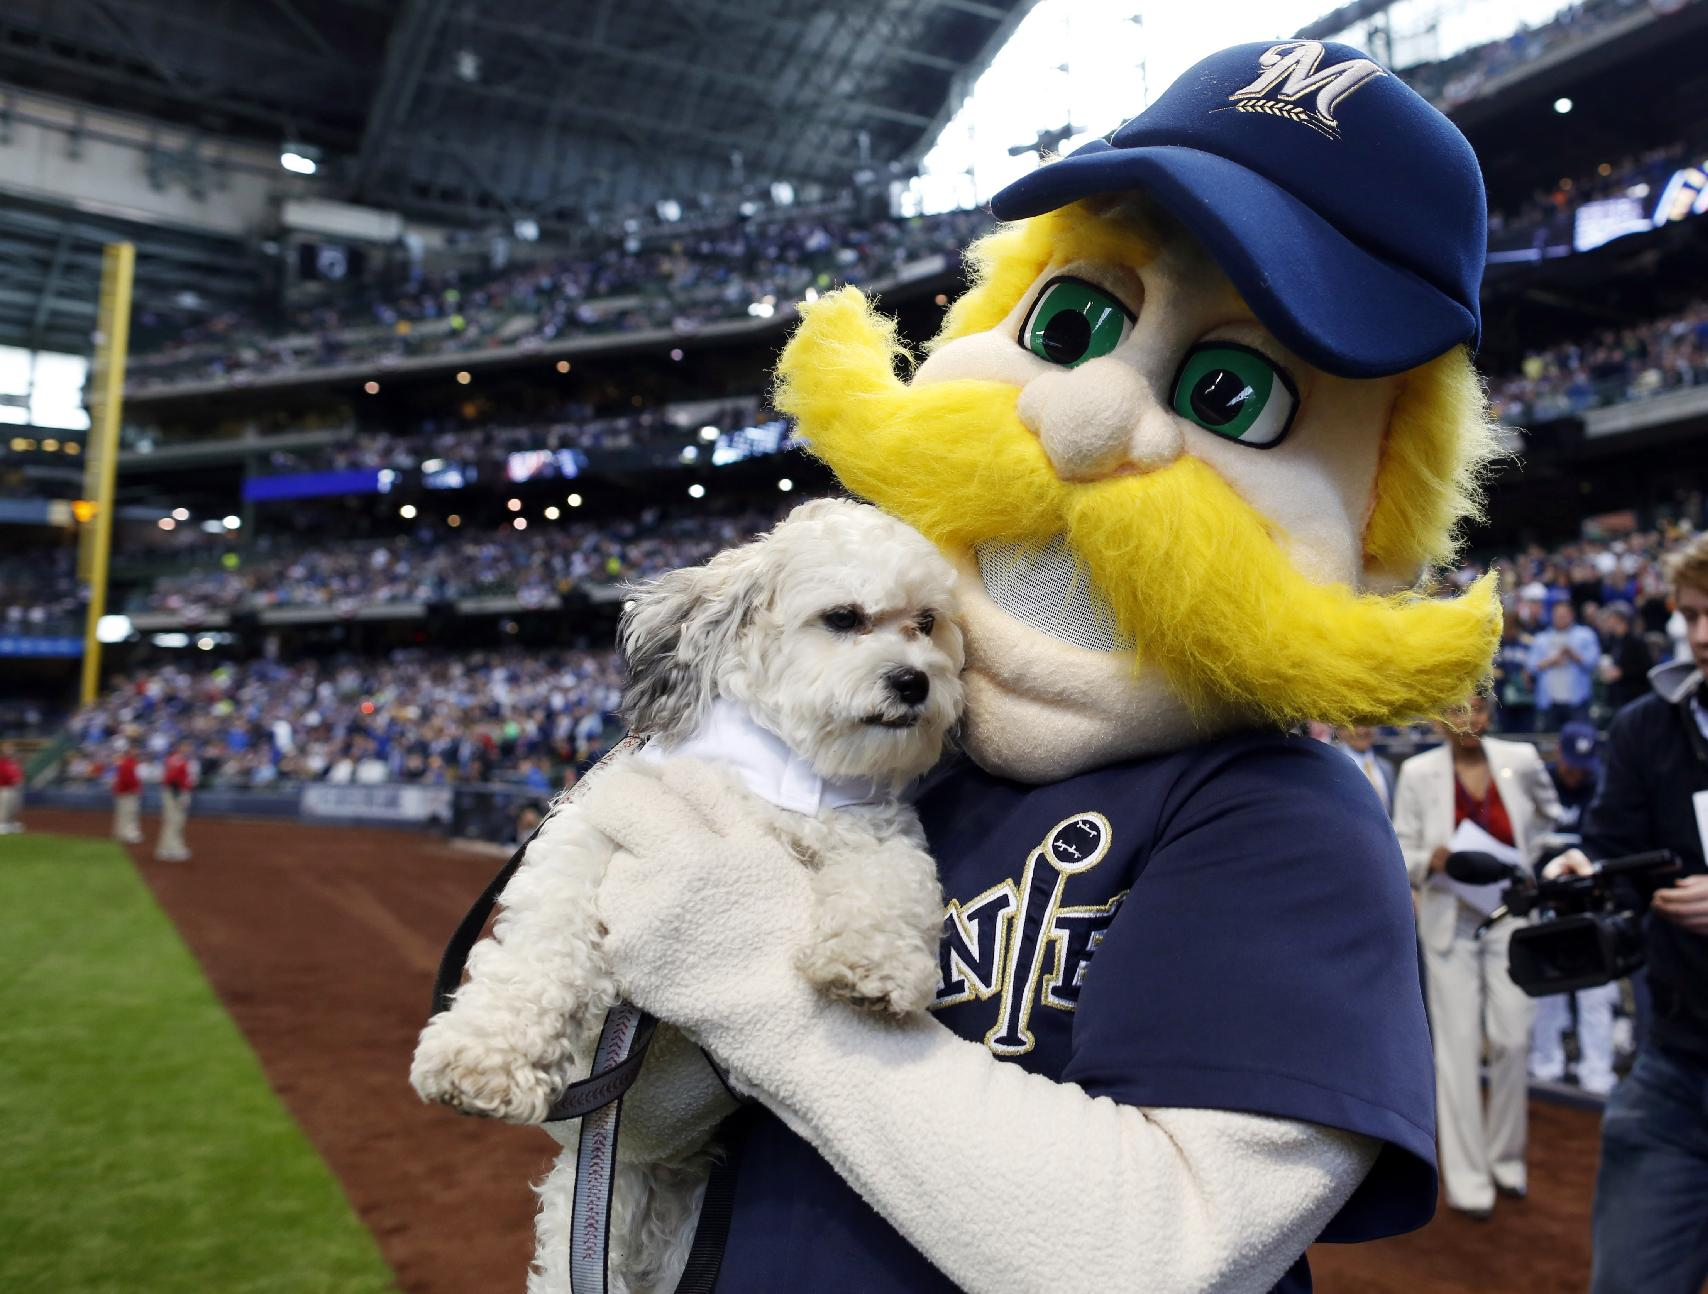 How the Milwaukee Brewers surprised us all and owned baseball's…